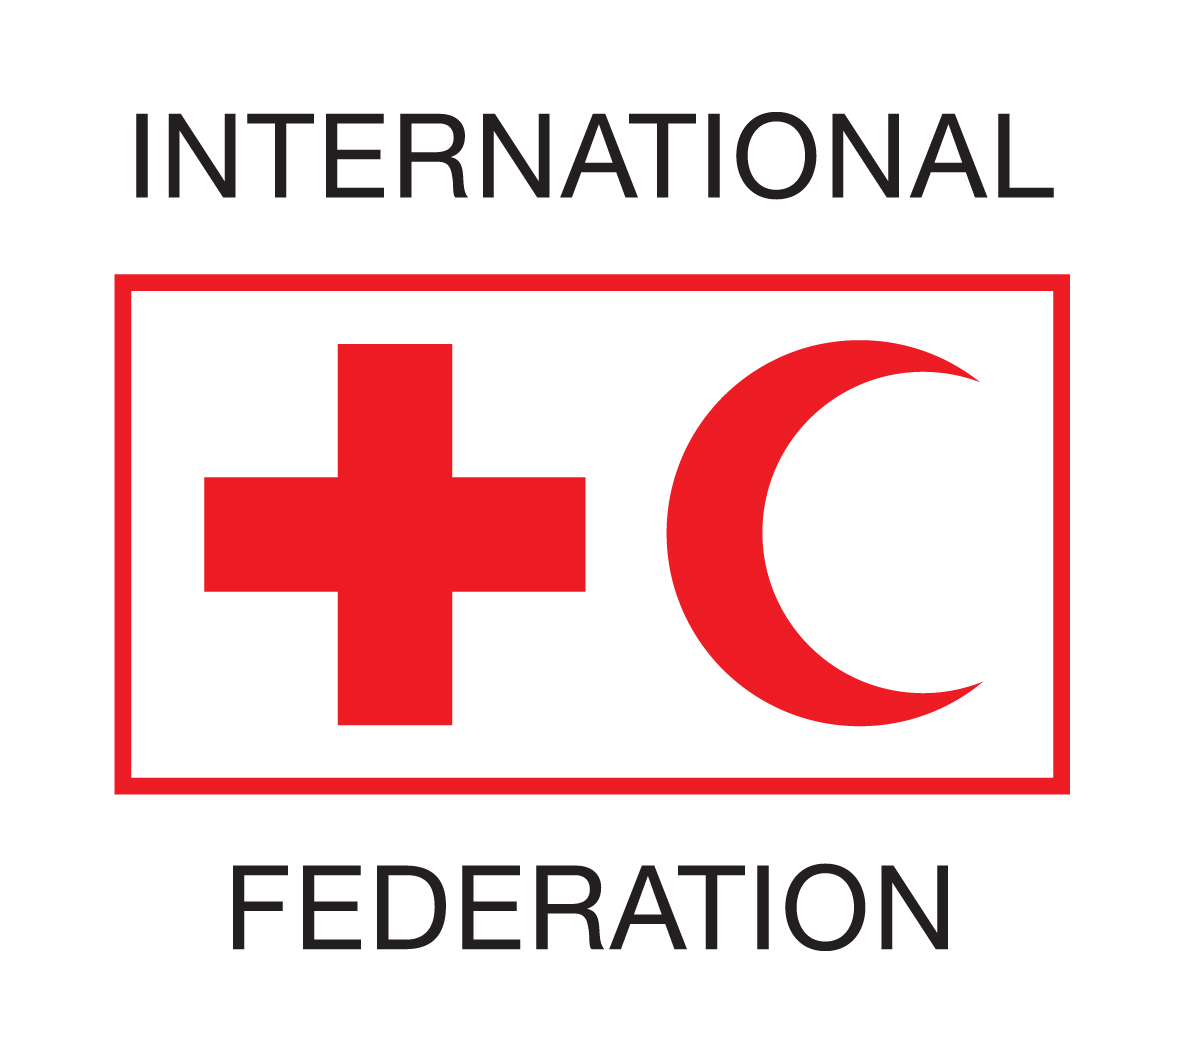 International Federation